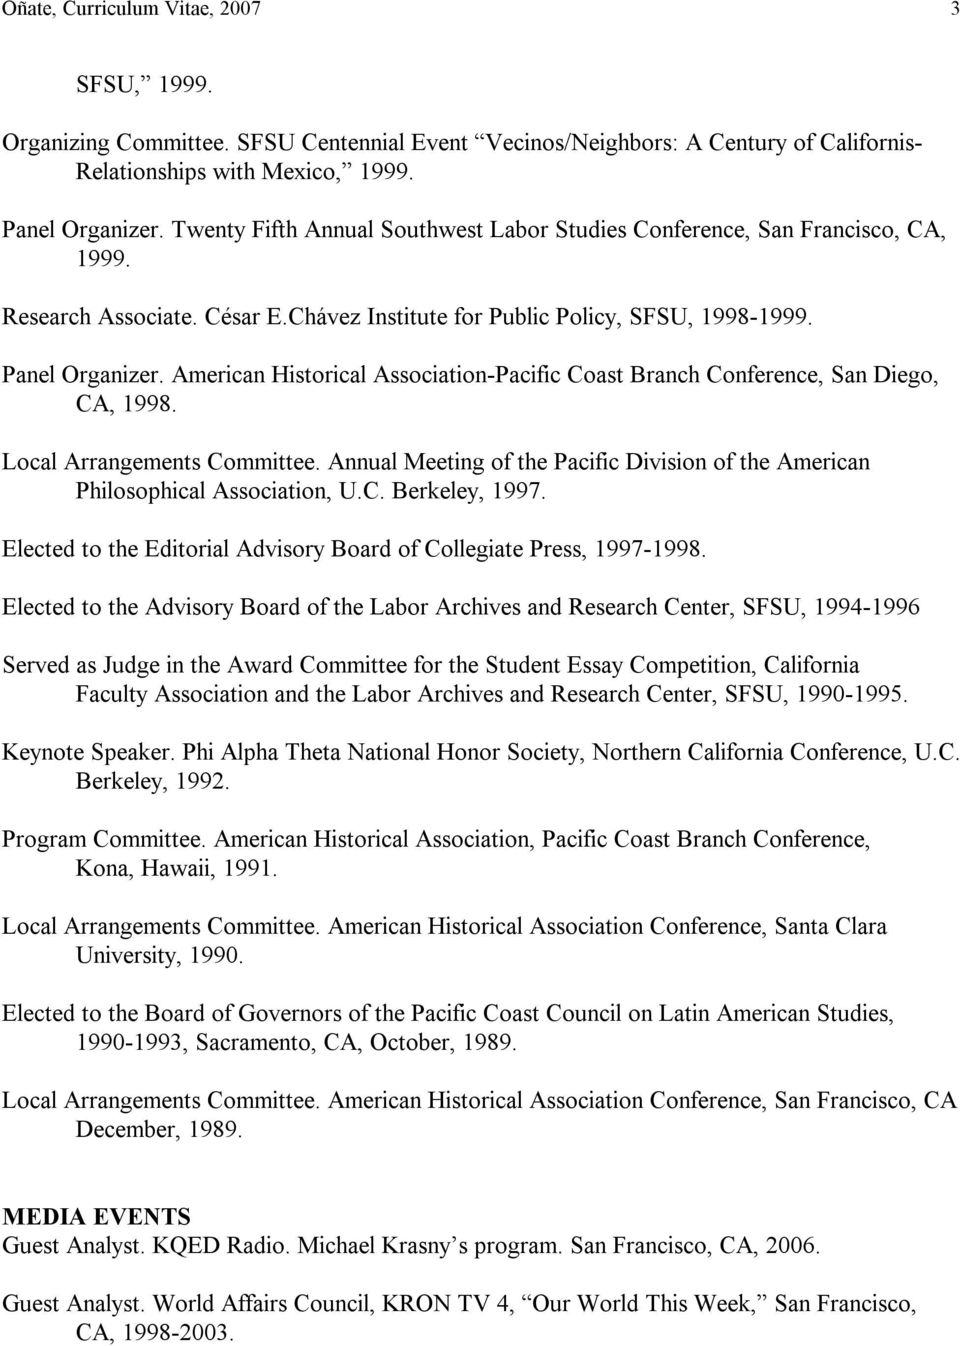 American Historical Association Pacific Coast Branch Conference, San Diego, CA, 1998. Local Arrangements Committee. Annual Meeting of the Pacific Division of the American Philosophical Association, U.